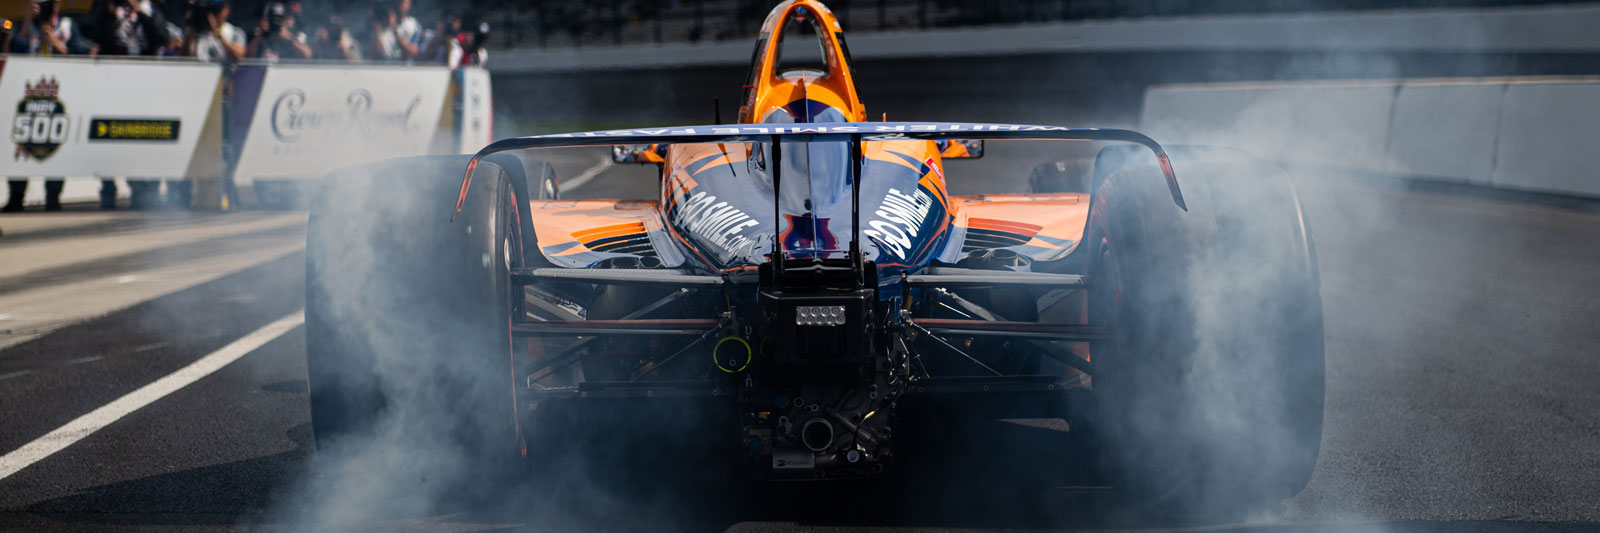 Indy 500 with Grand Prix Tours